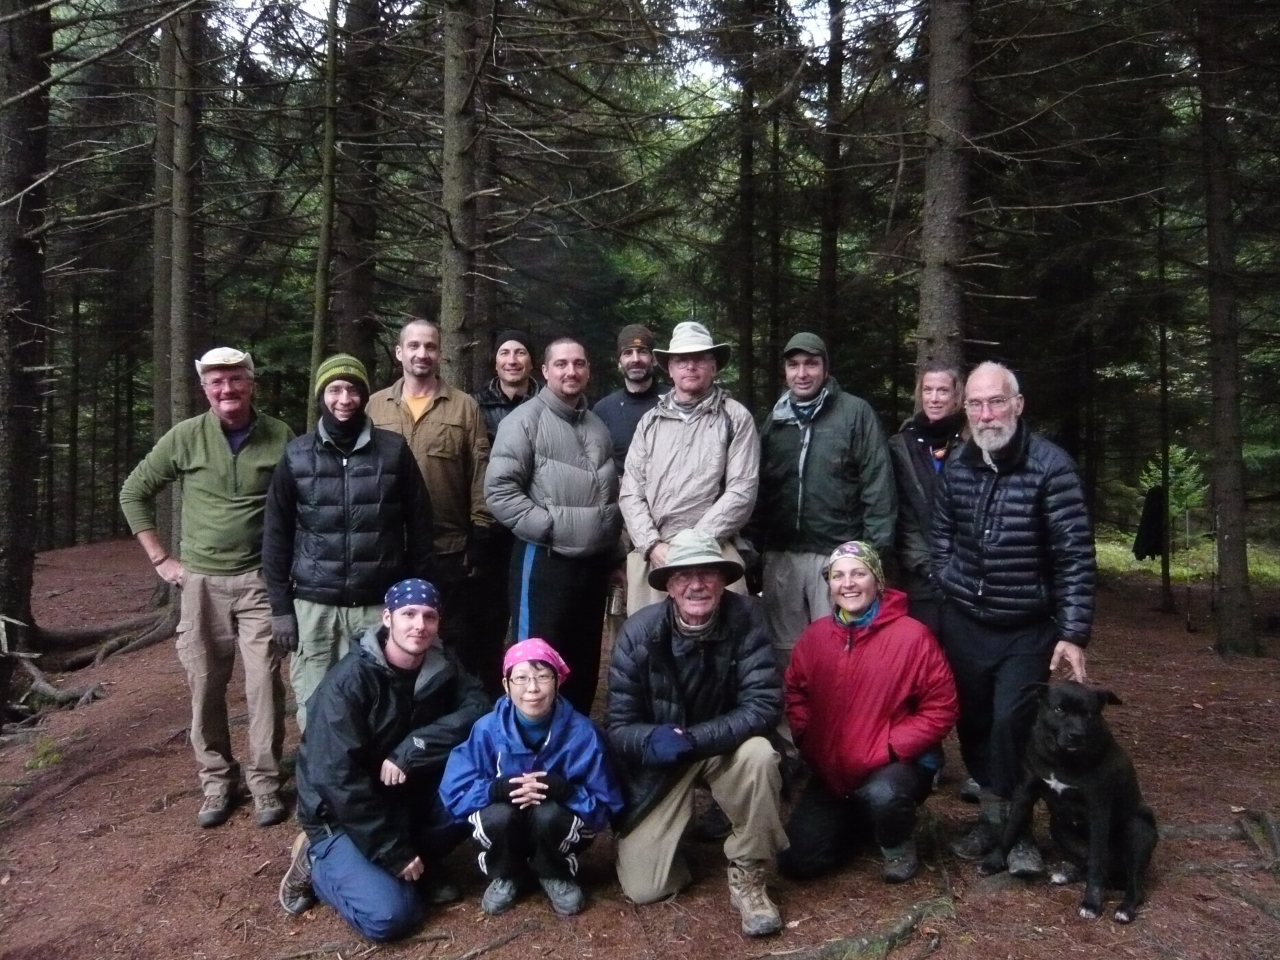 Dolly Sods, Wv Sept. 2011 Group Photo